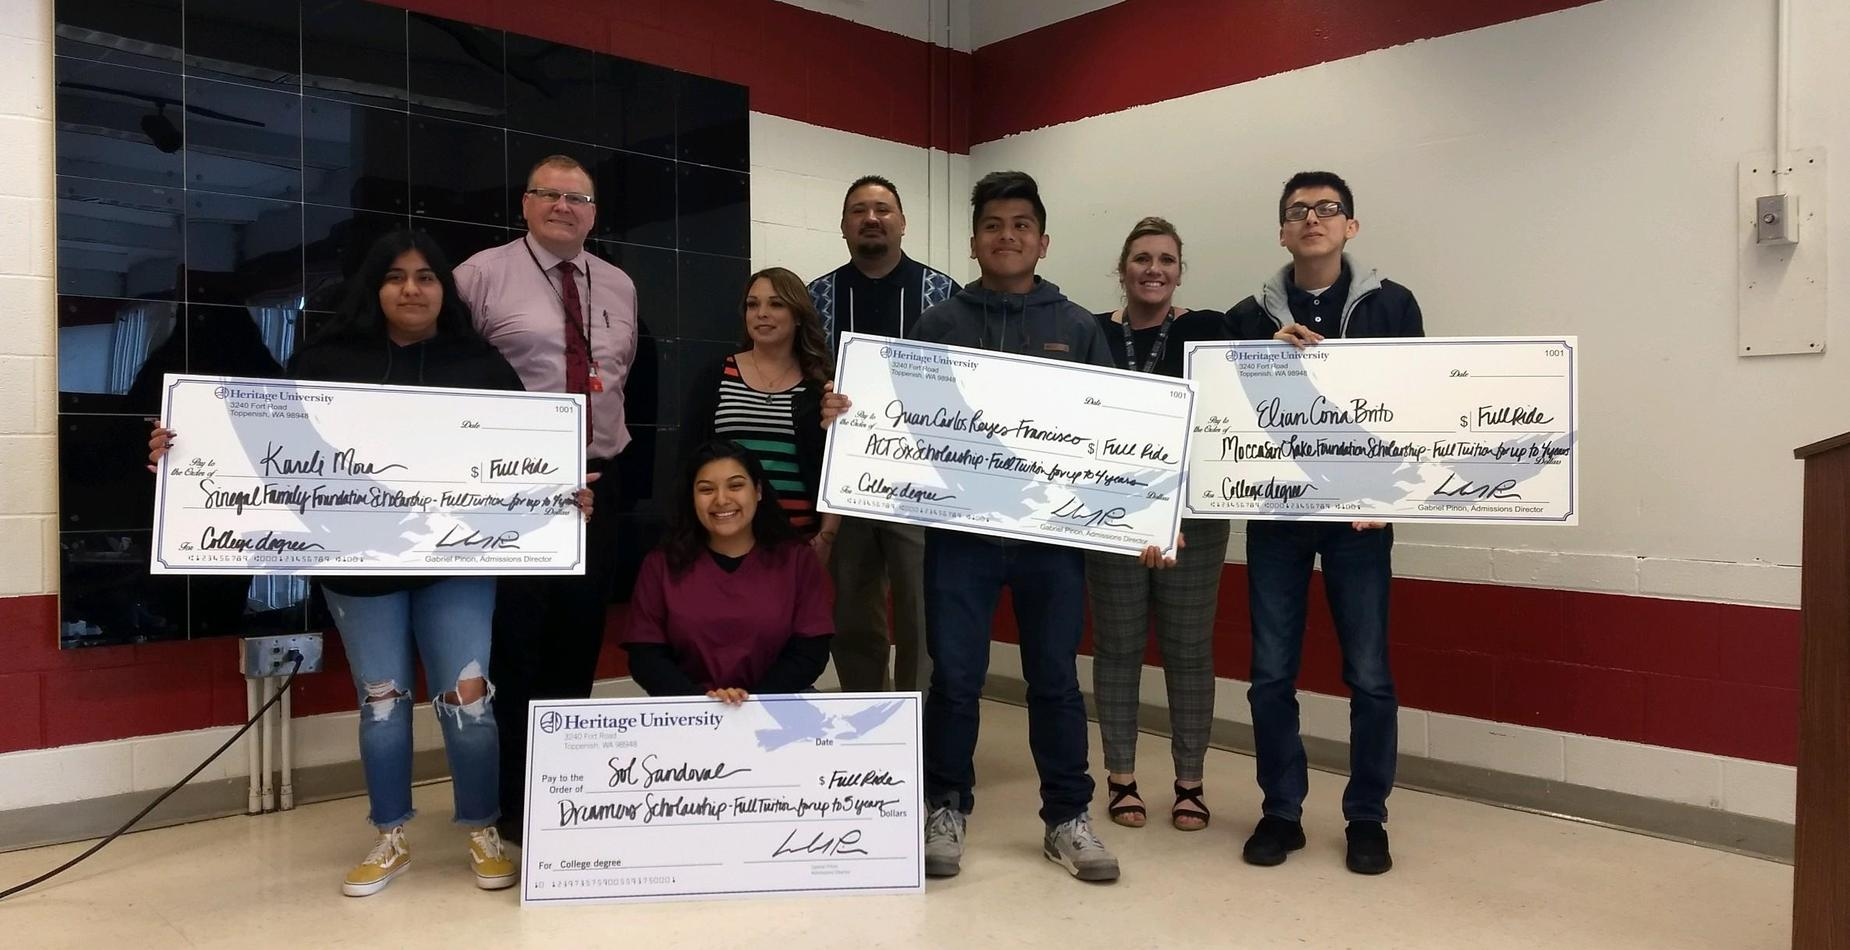 High School Students receive full-ride scholarships to Heritage University